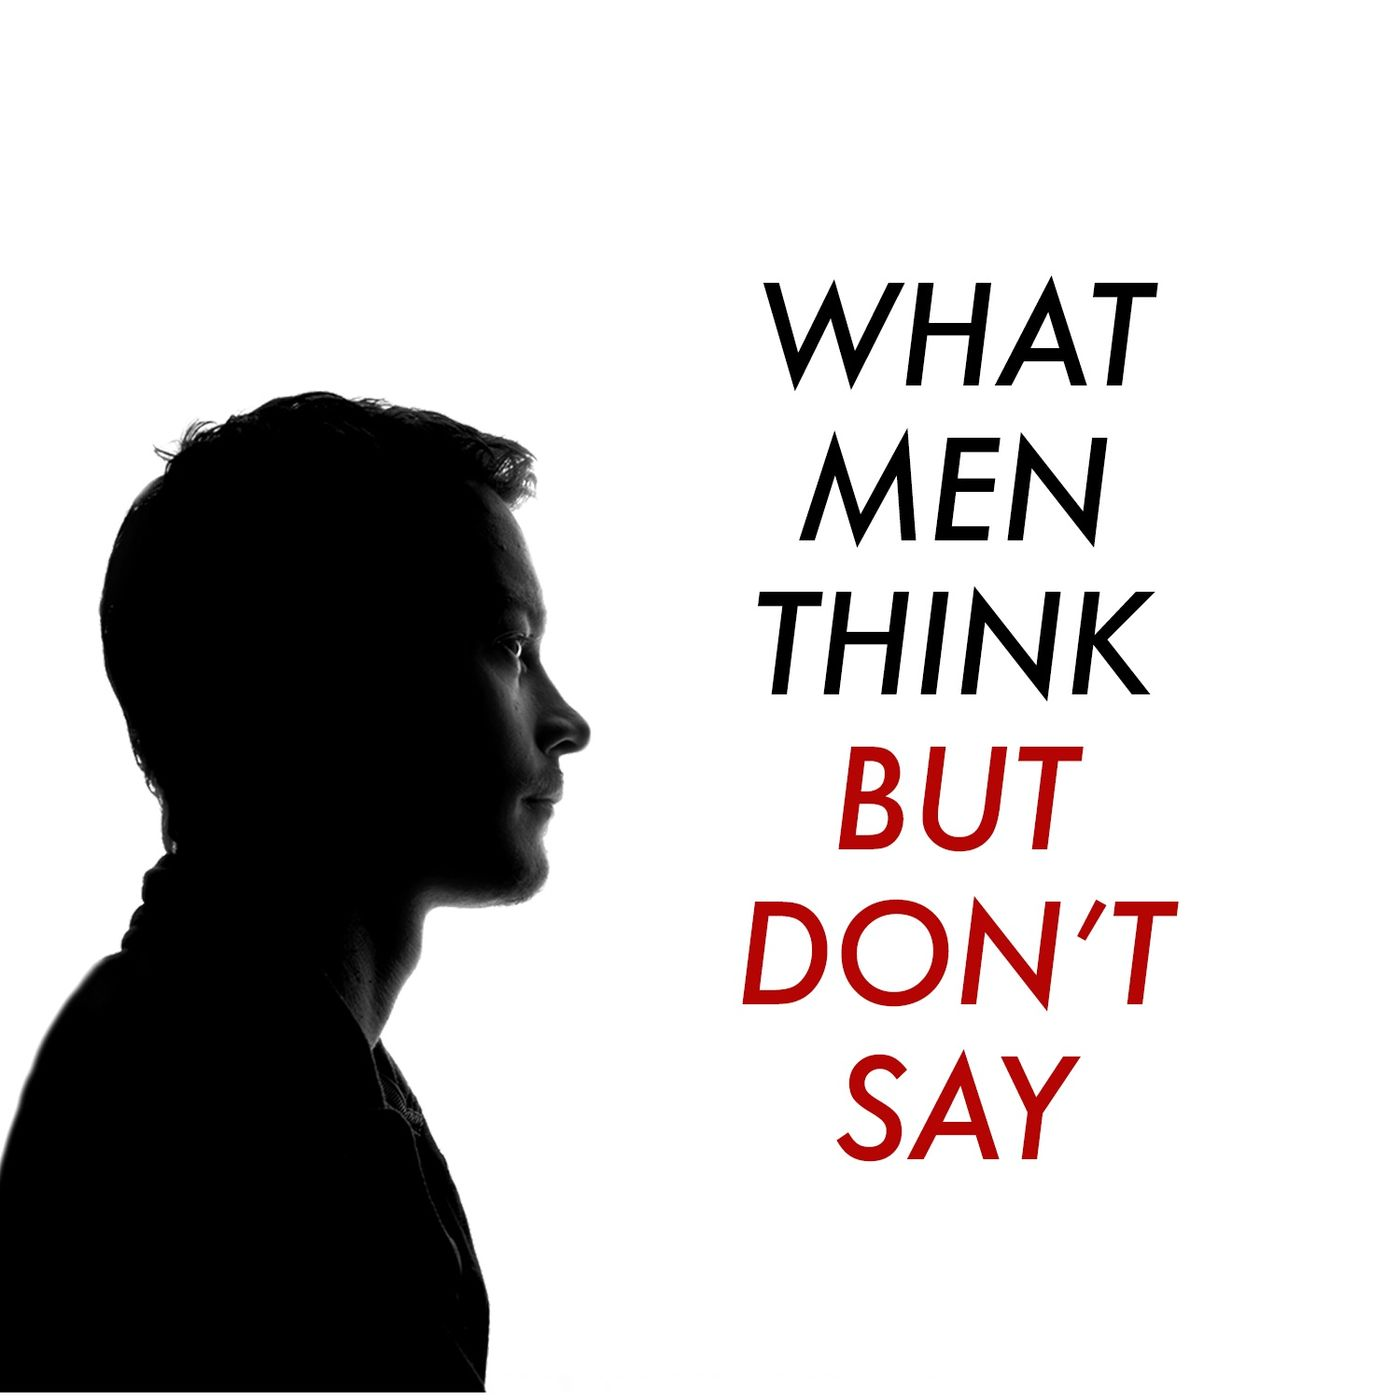 what men think but don't say